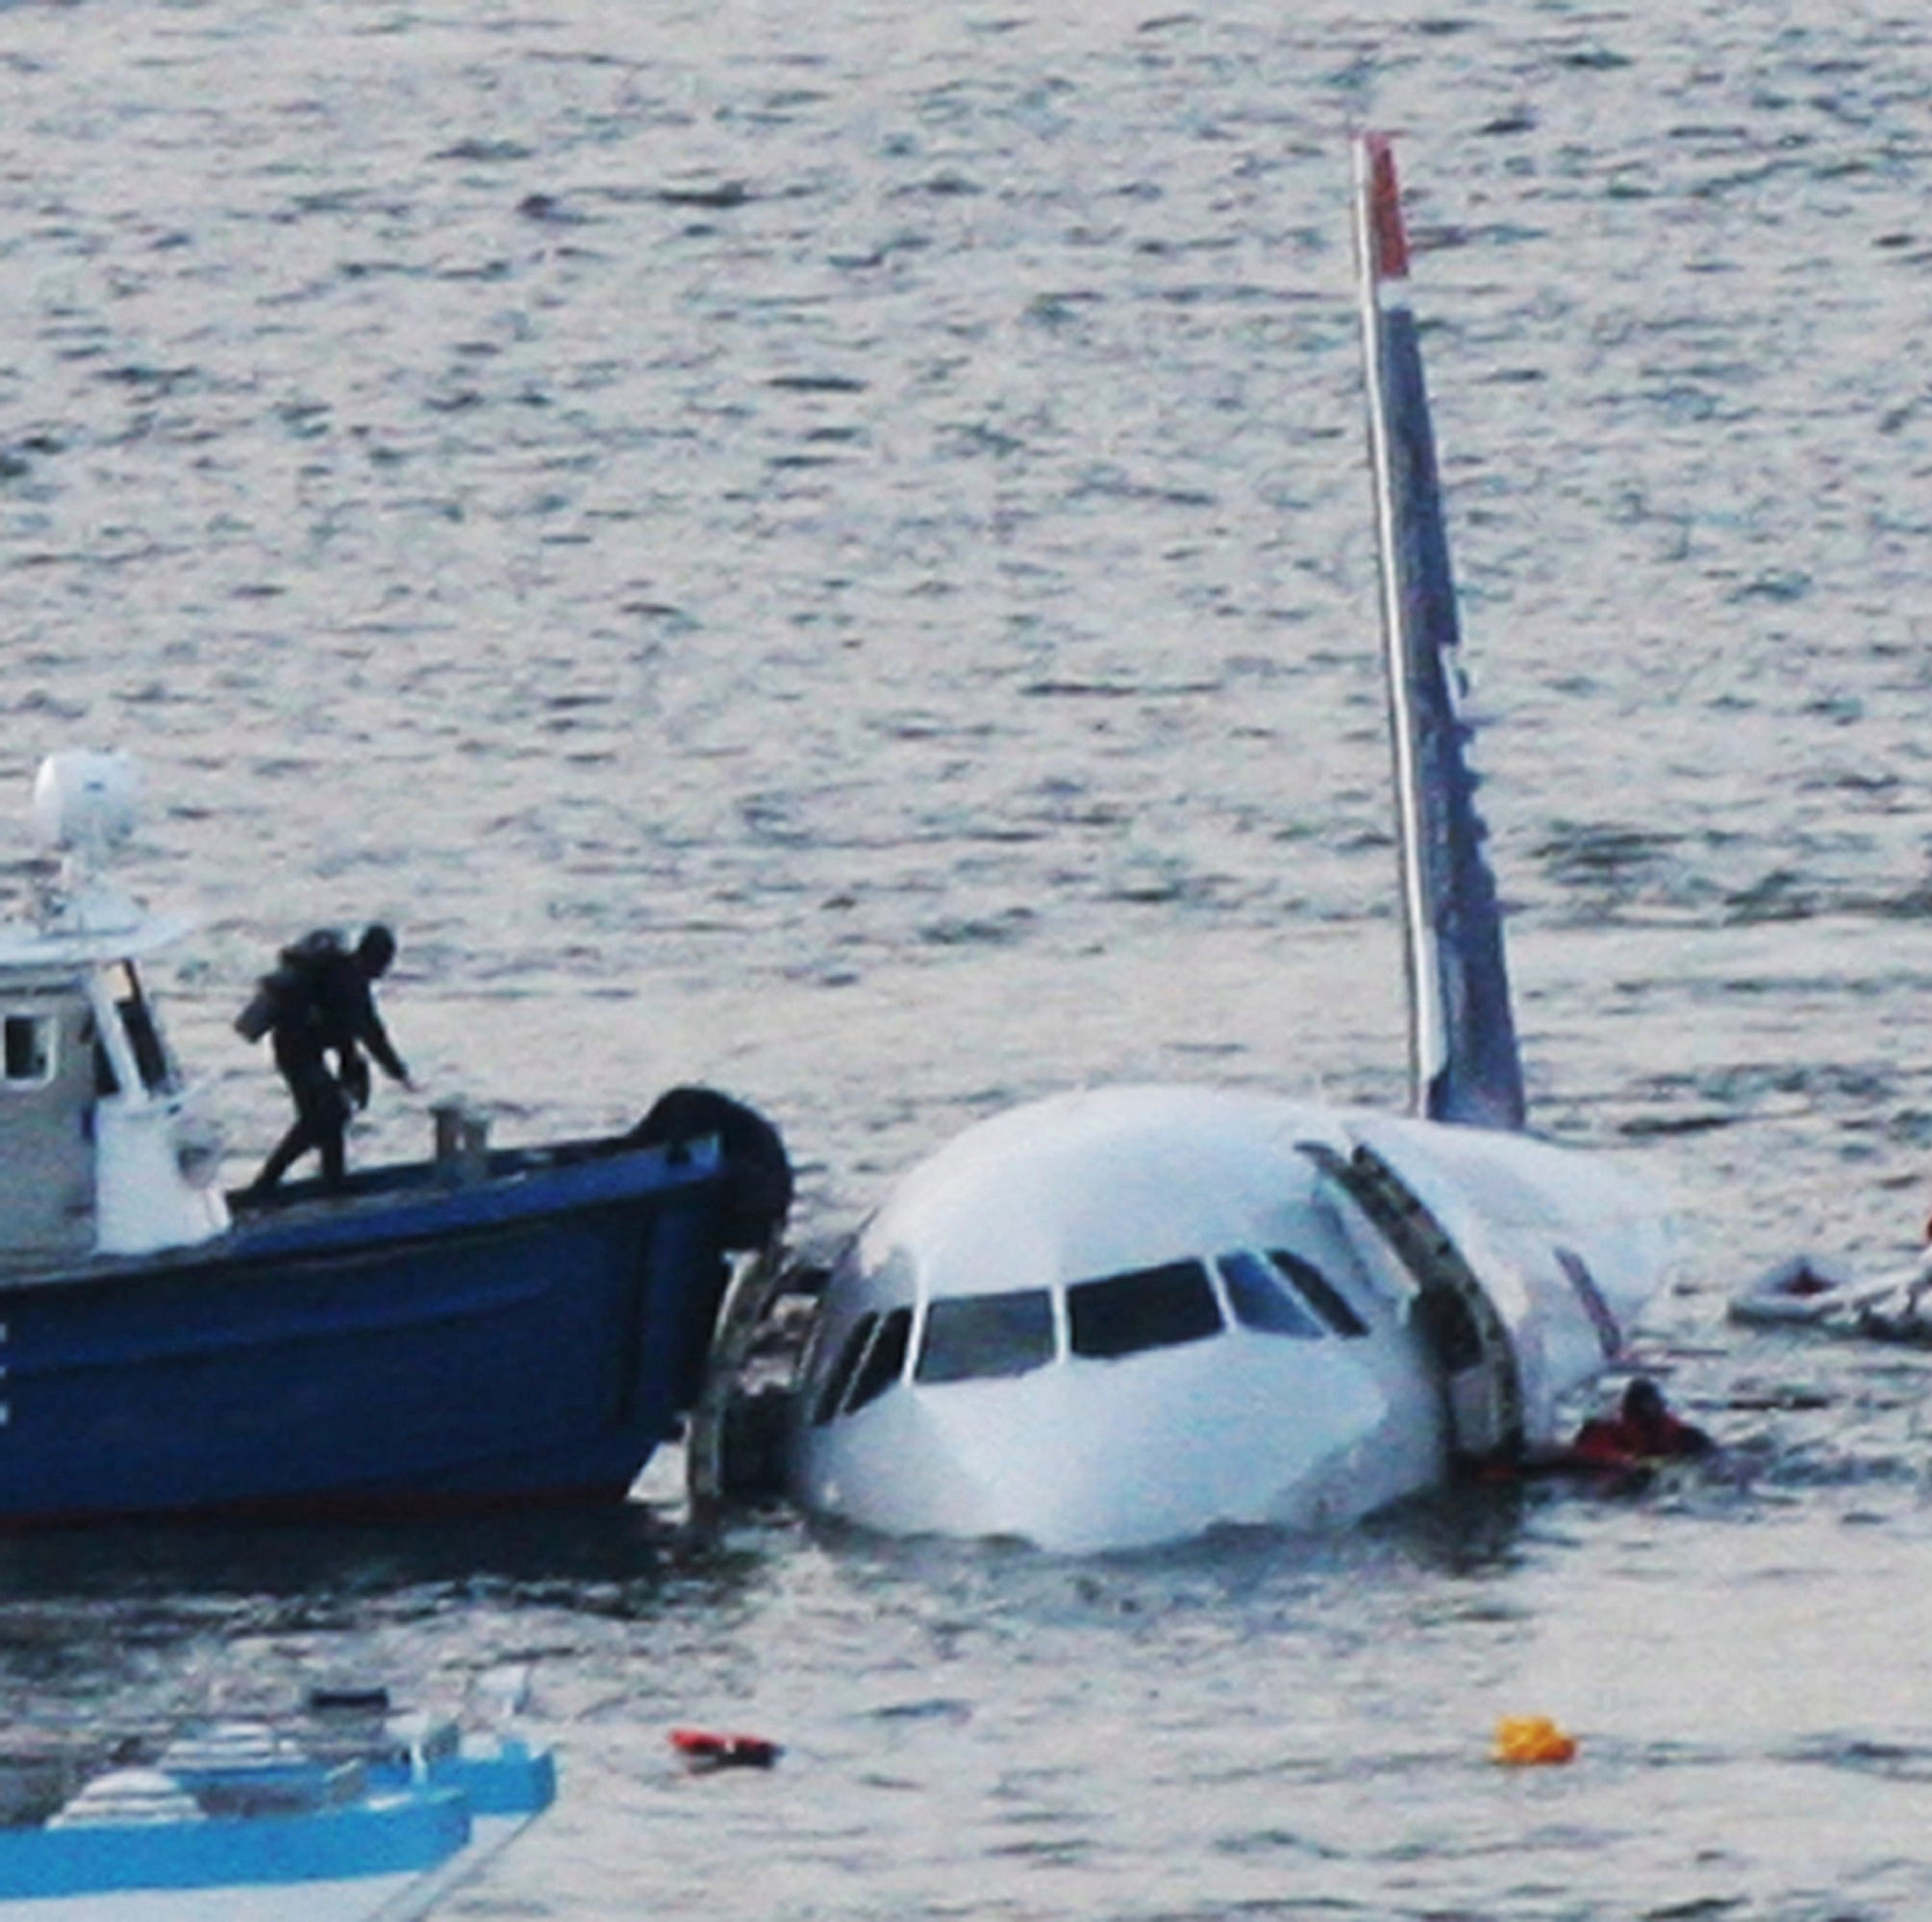 "FILE - In this Jan. 15, 2009 file photo, a diver, left, aboard an NYPD vessel prepares to rescue passengers that escaped from the Airbus 320 US Airways aircraft made an emergency landing in the Hudson River in New York in what came to be known as the ""Miracle on the Hudson"" because everyone survived. It's been 10 years since US Airways flight 1549 landed on the Hudson River after colliding with a flock of geese just after takeoff. (AP Photo/Bebeto Matthews, File) ORG XMIT: NYR101"